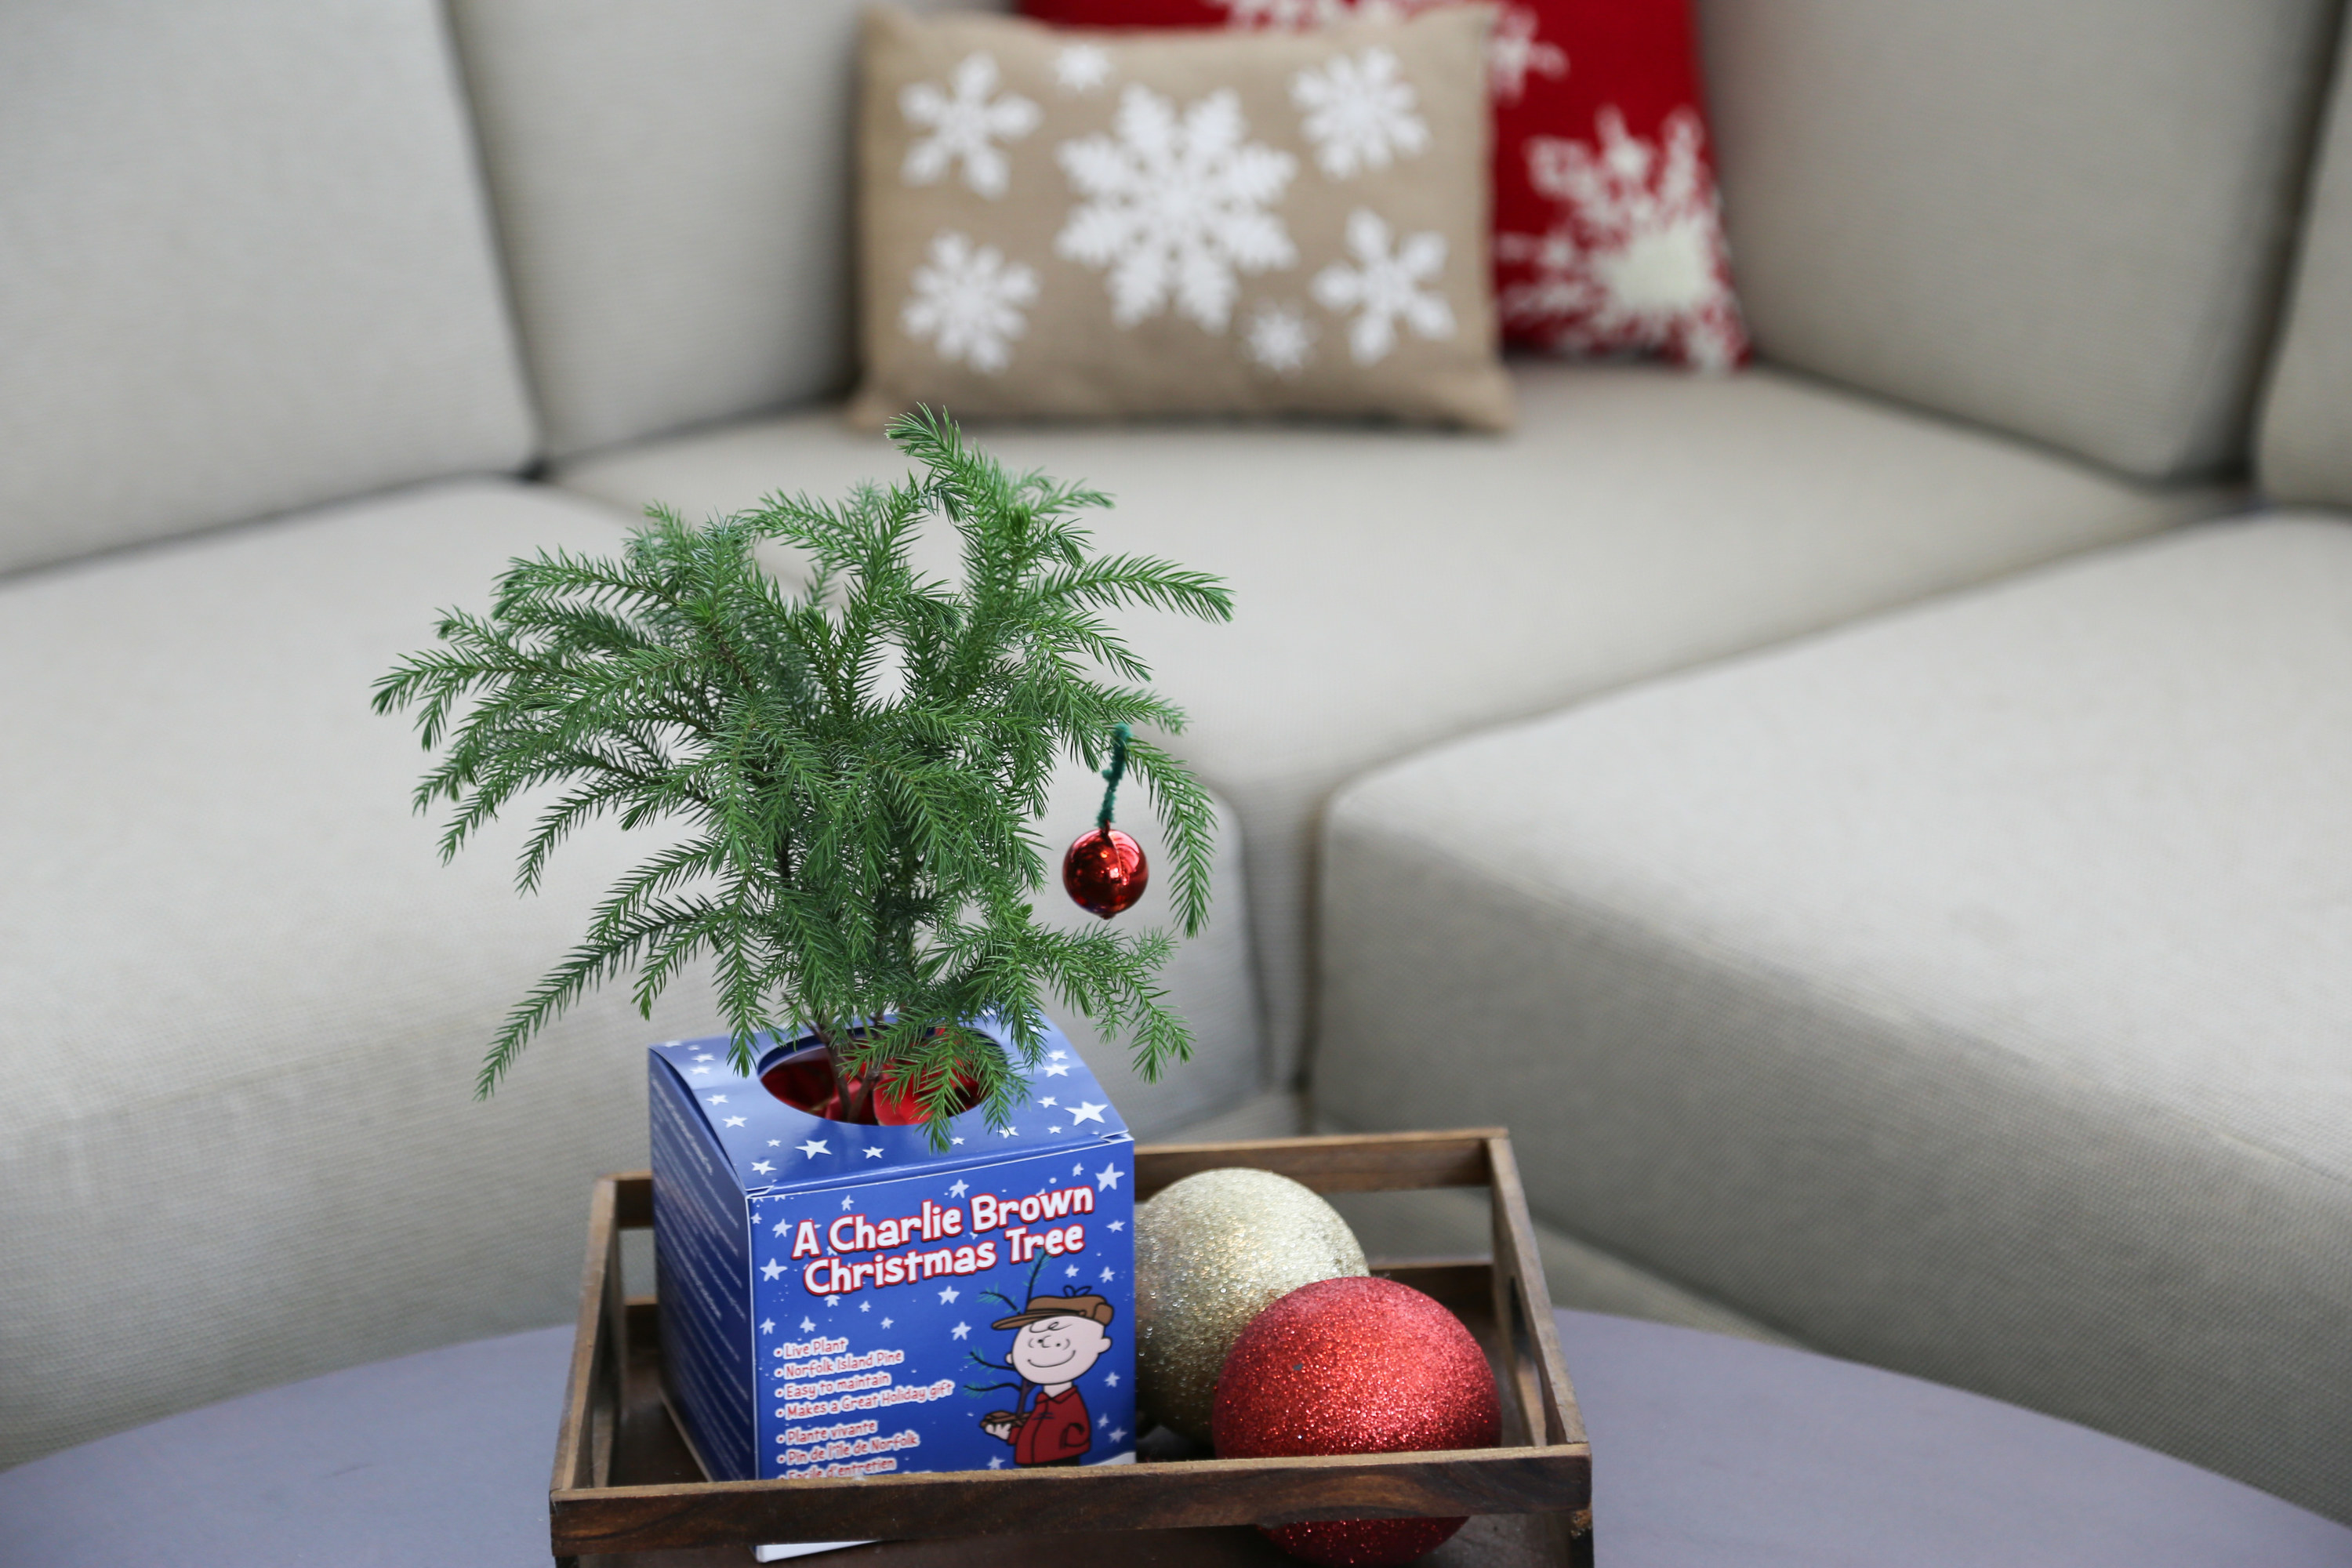 The small tree in a living room